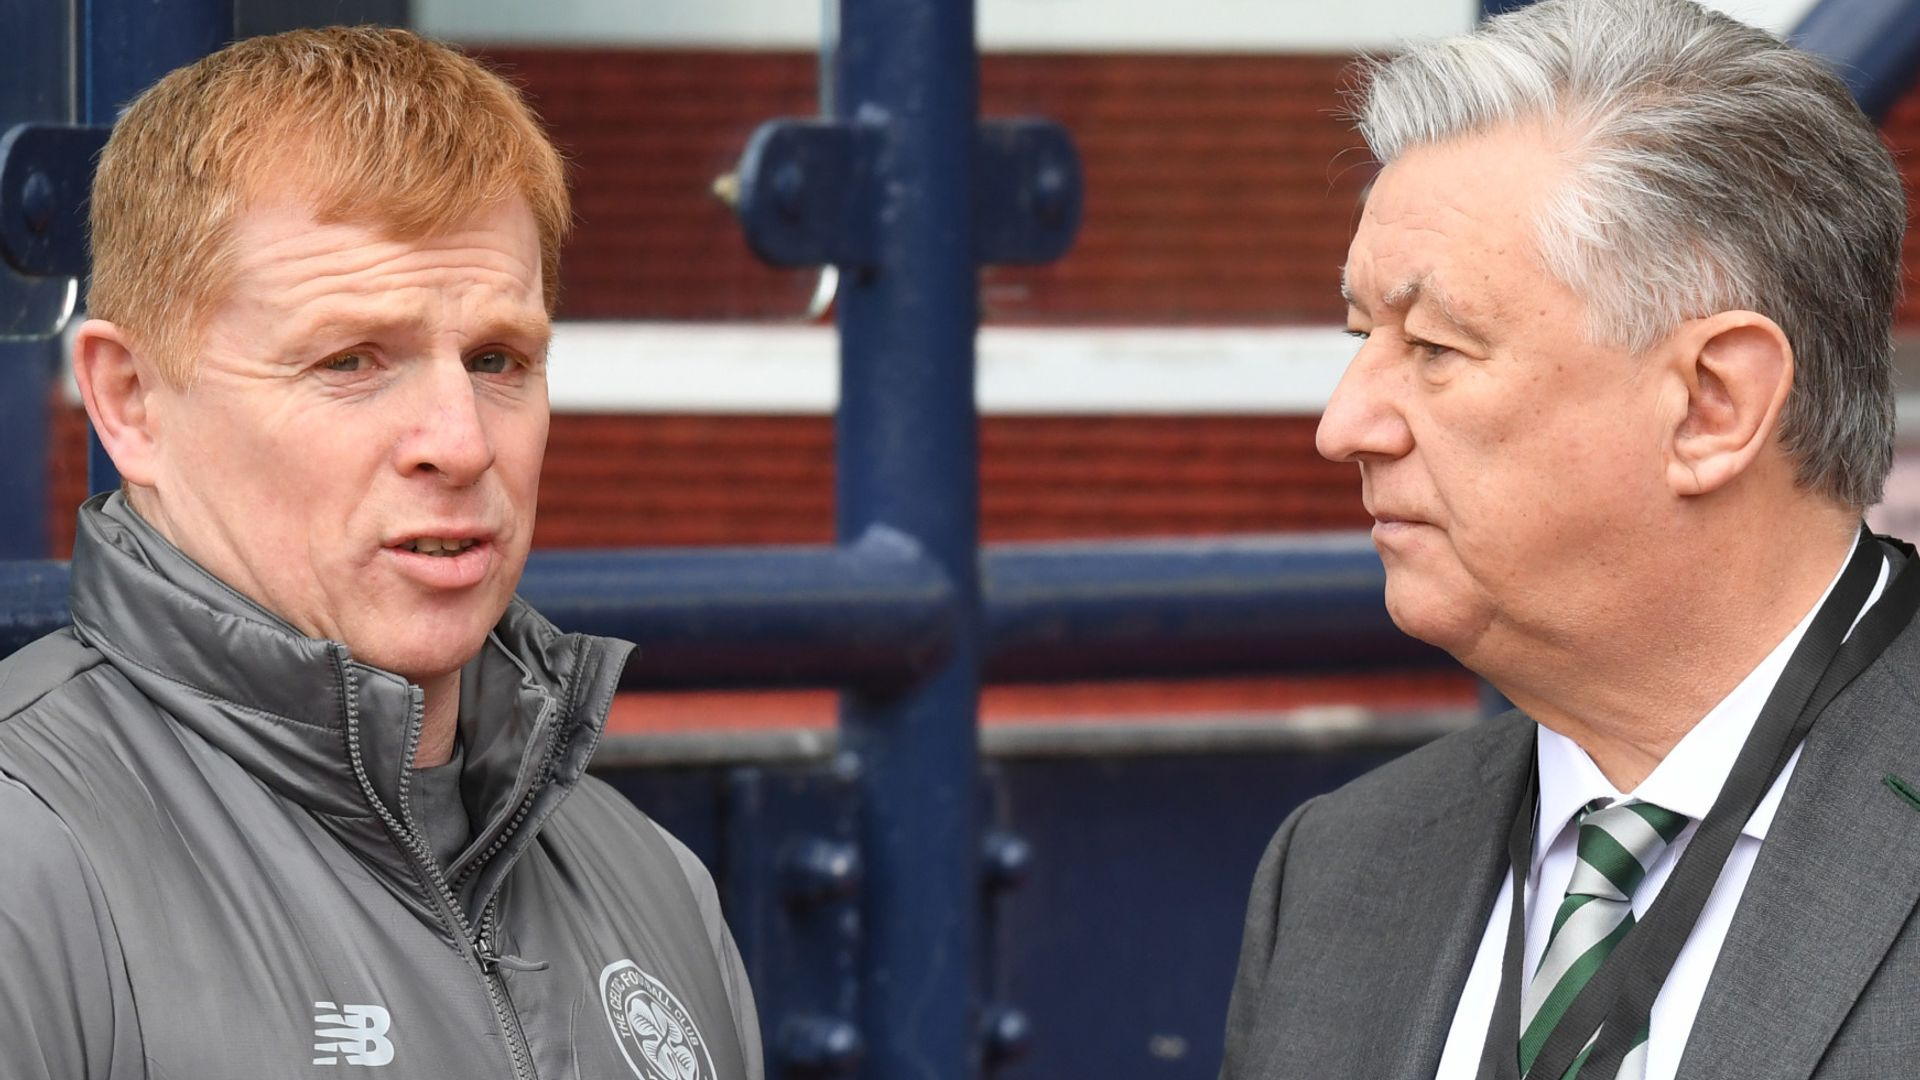 Celtic call for release of 2020/21 fixture list